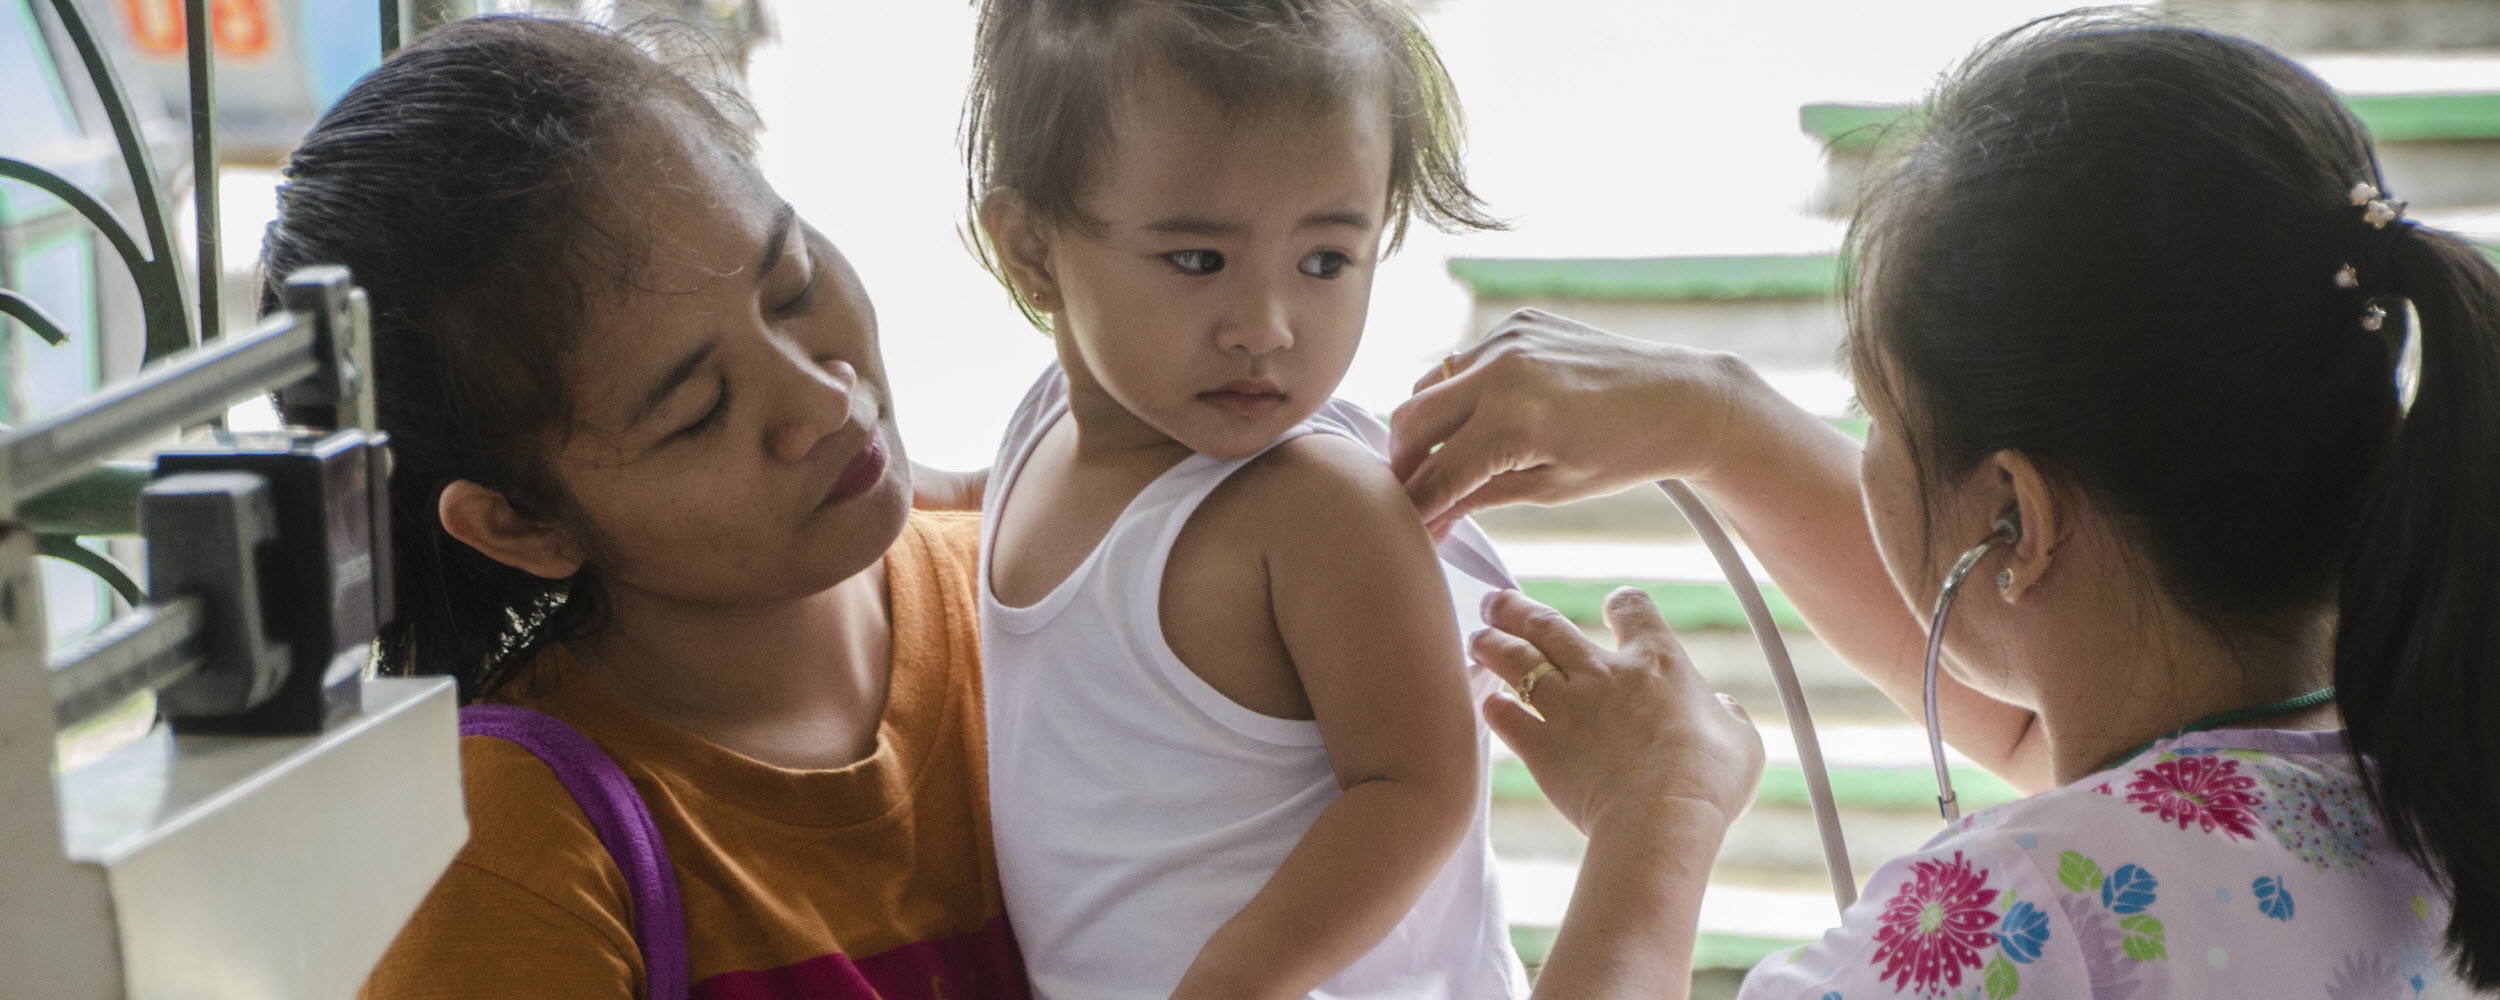 How to strengthen the health of children